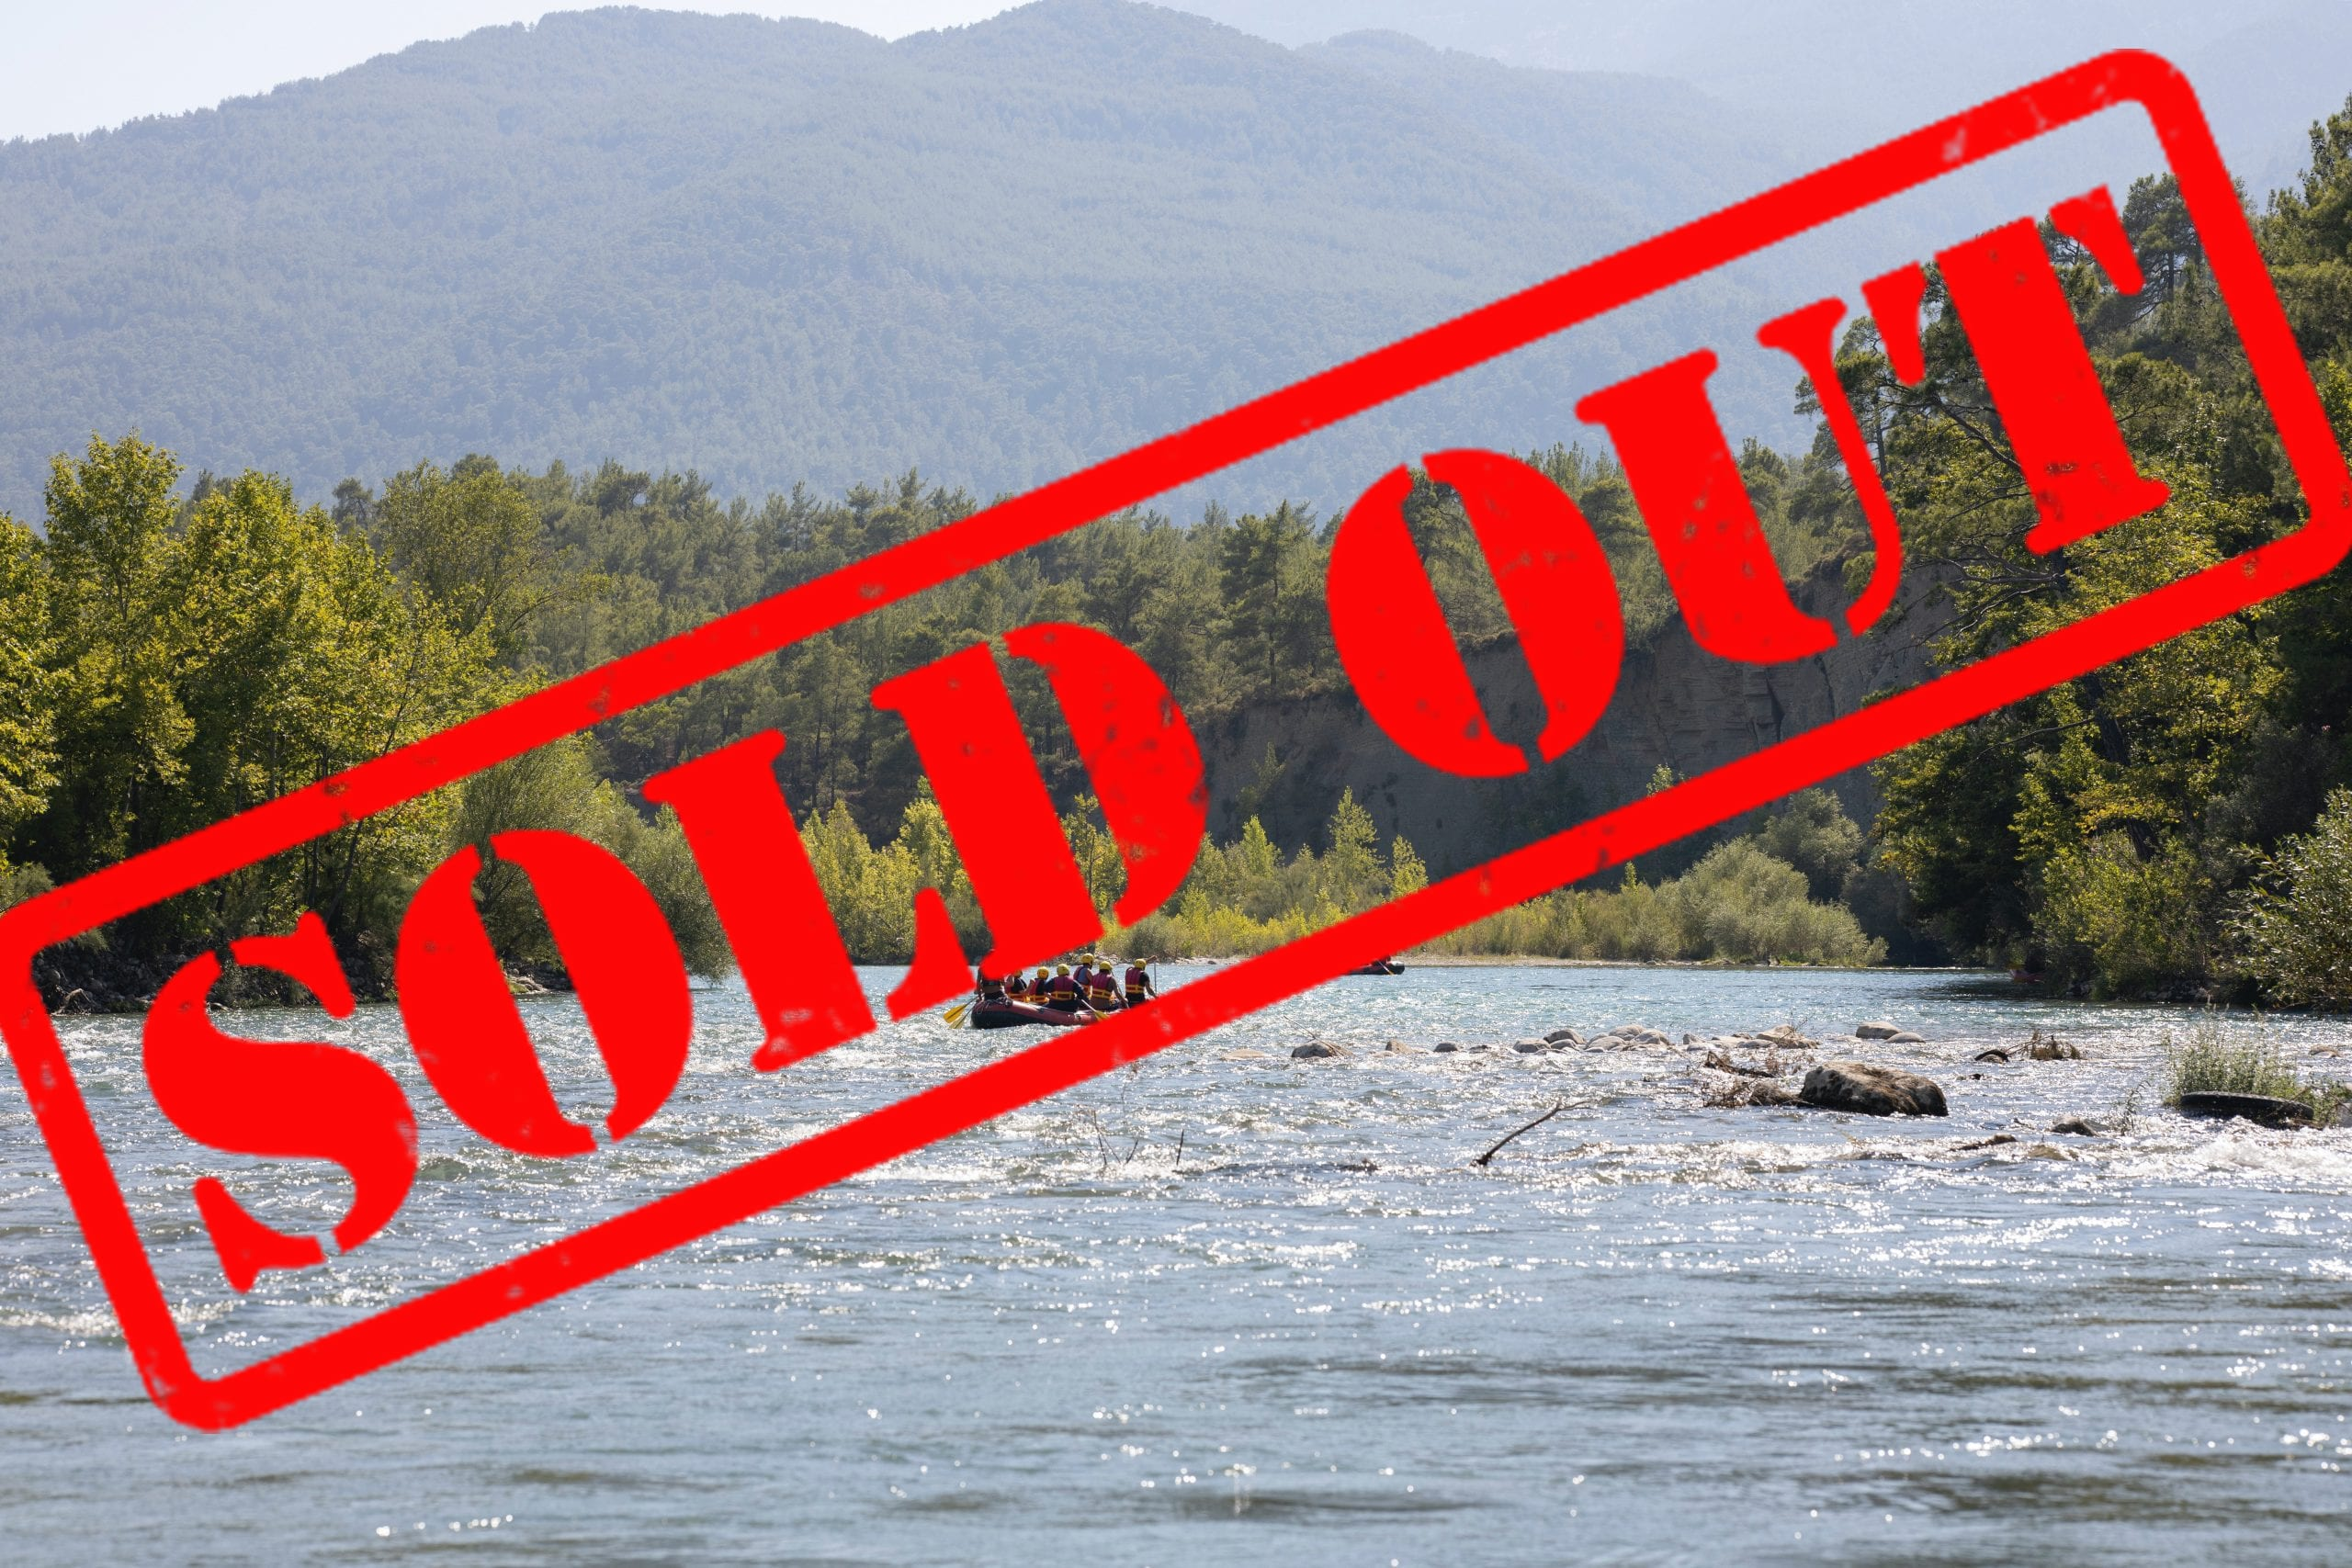 Rafting Sold Out